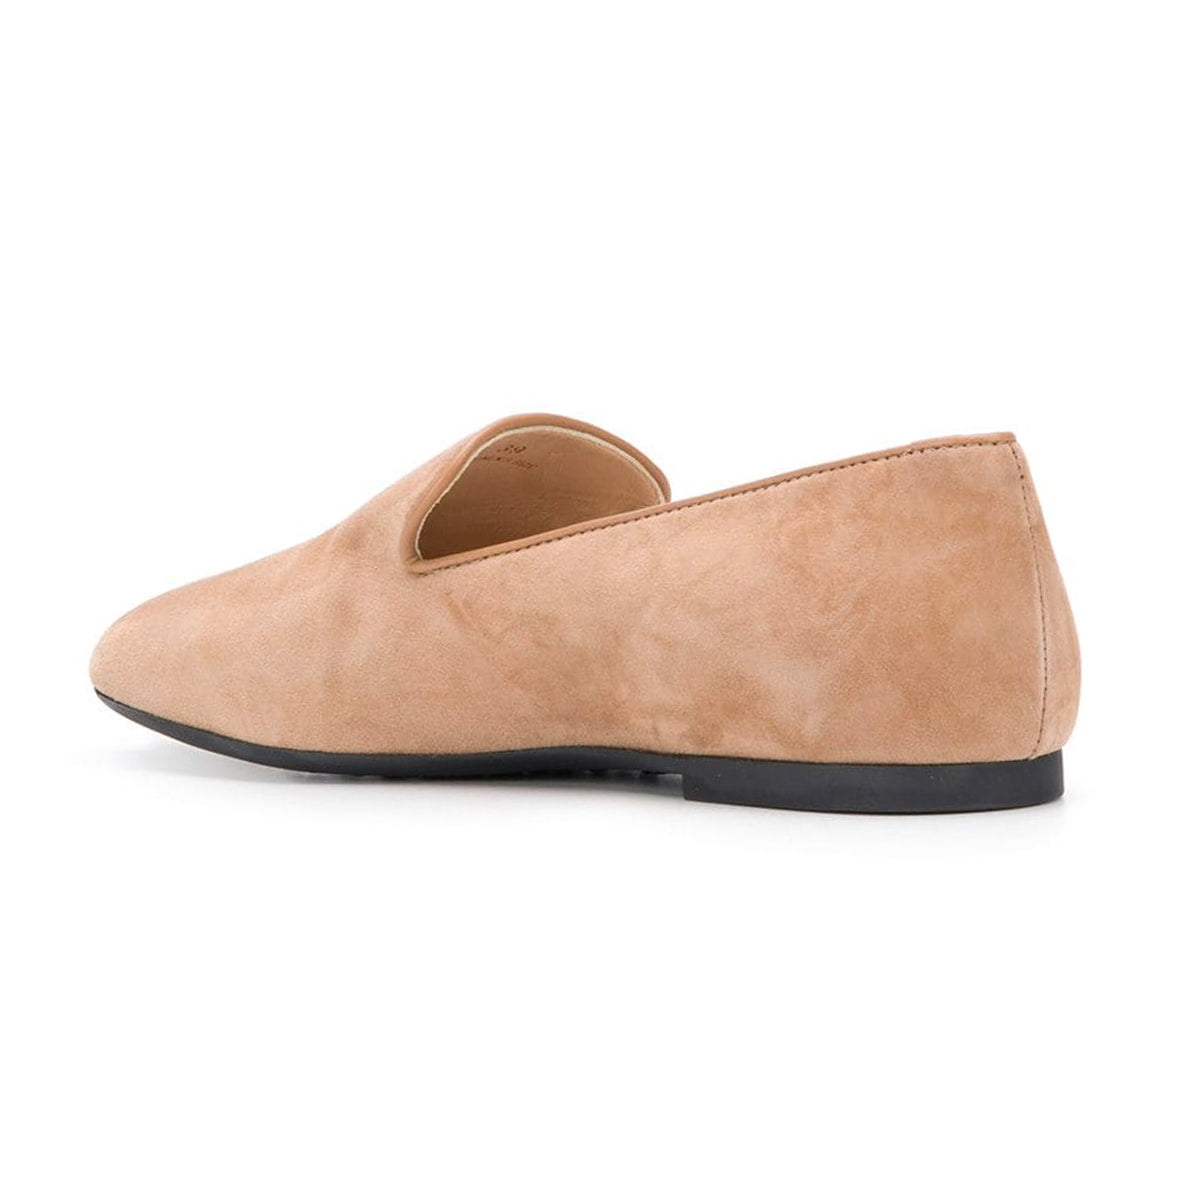 City Sole Suede Almond Toe Loafers